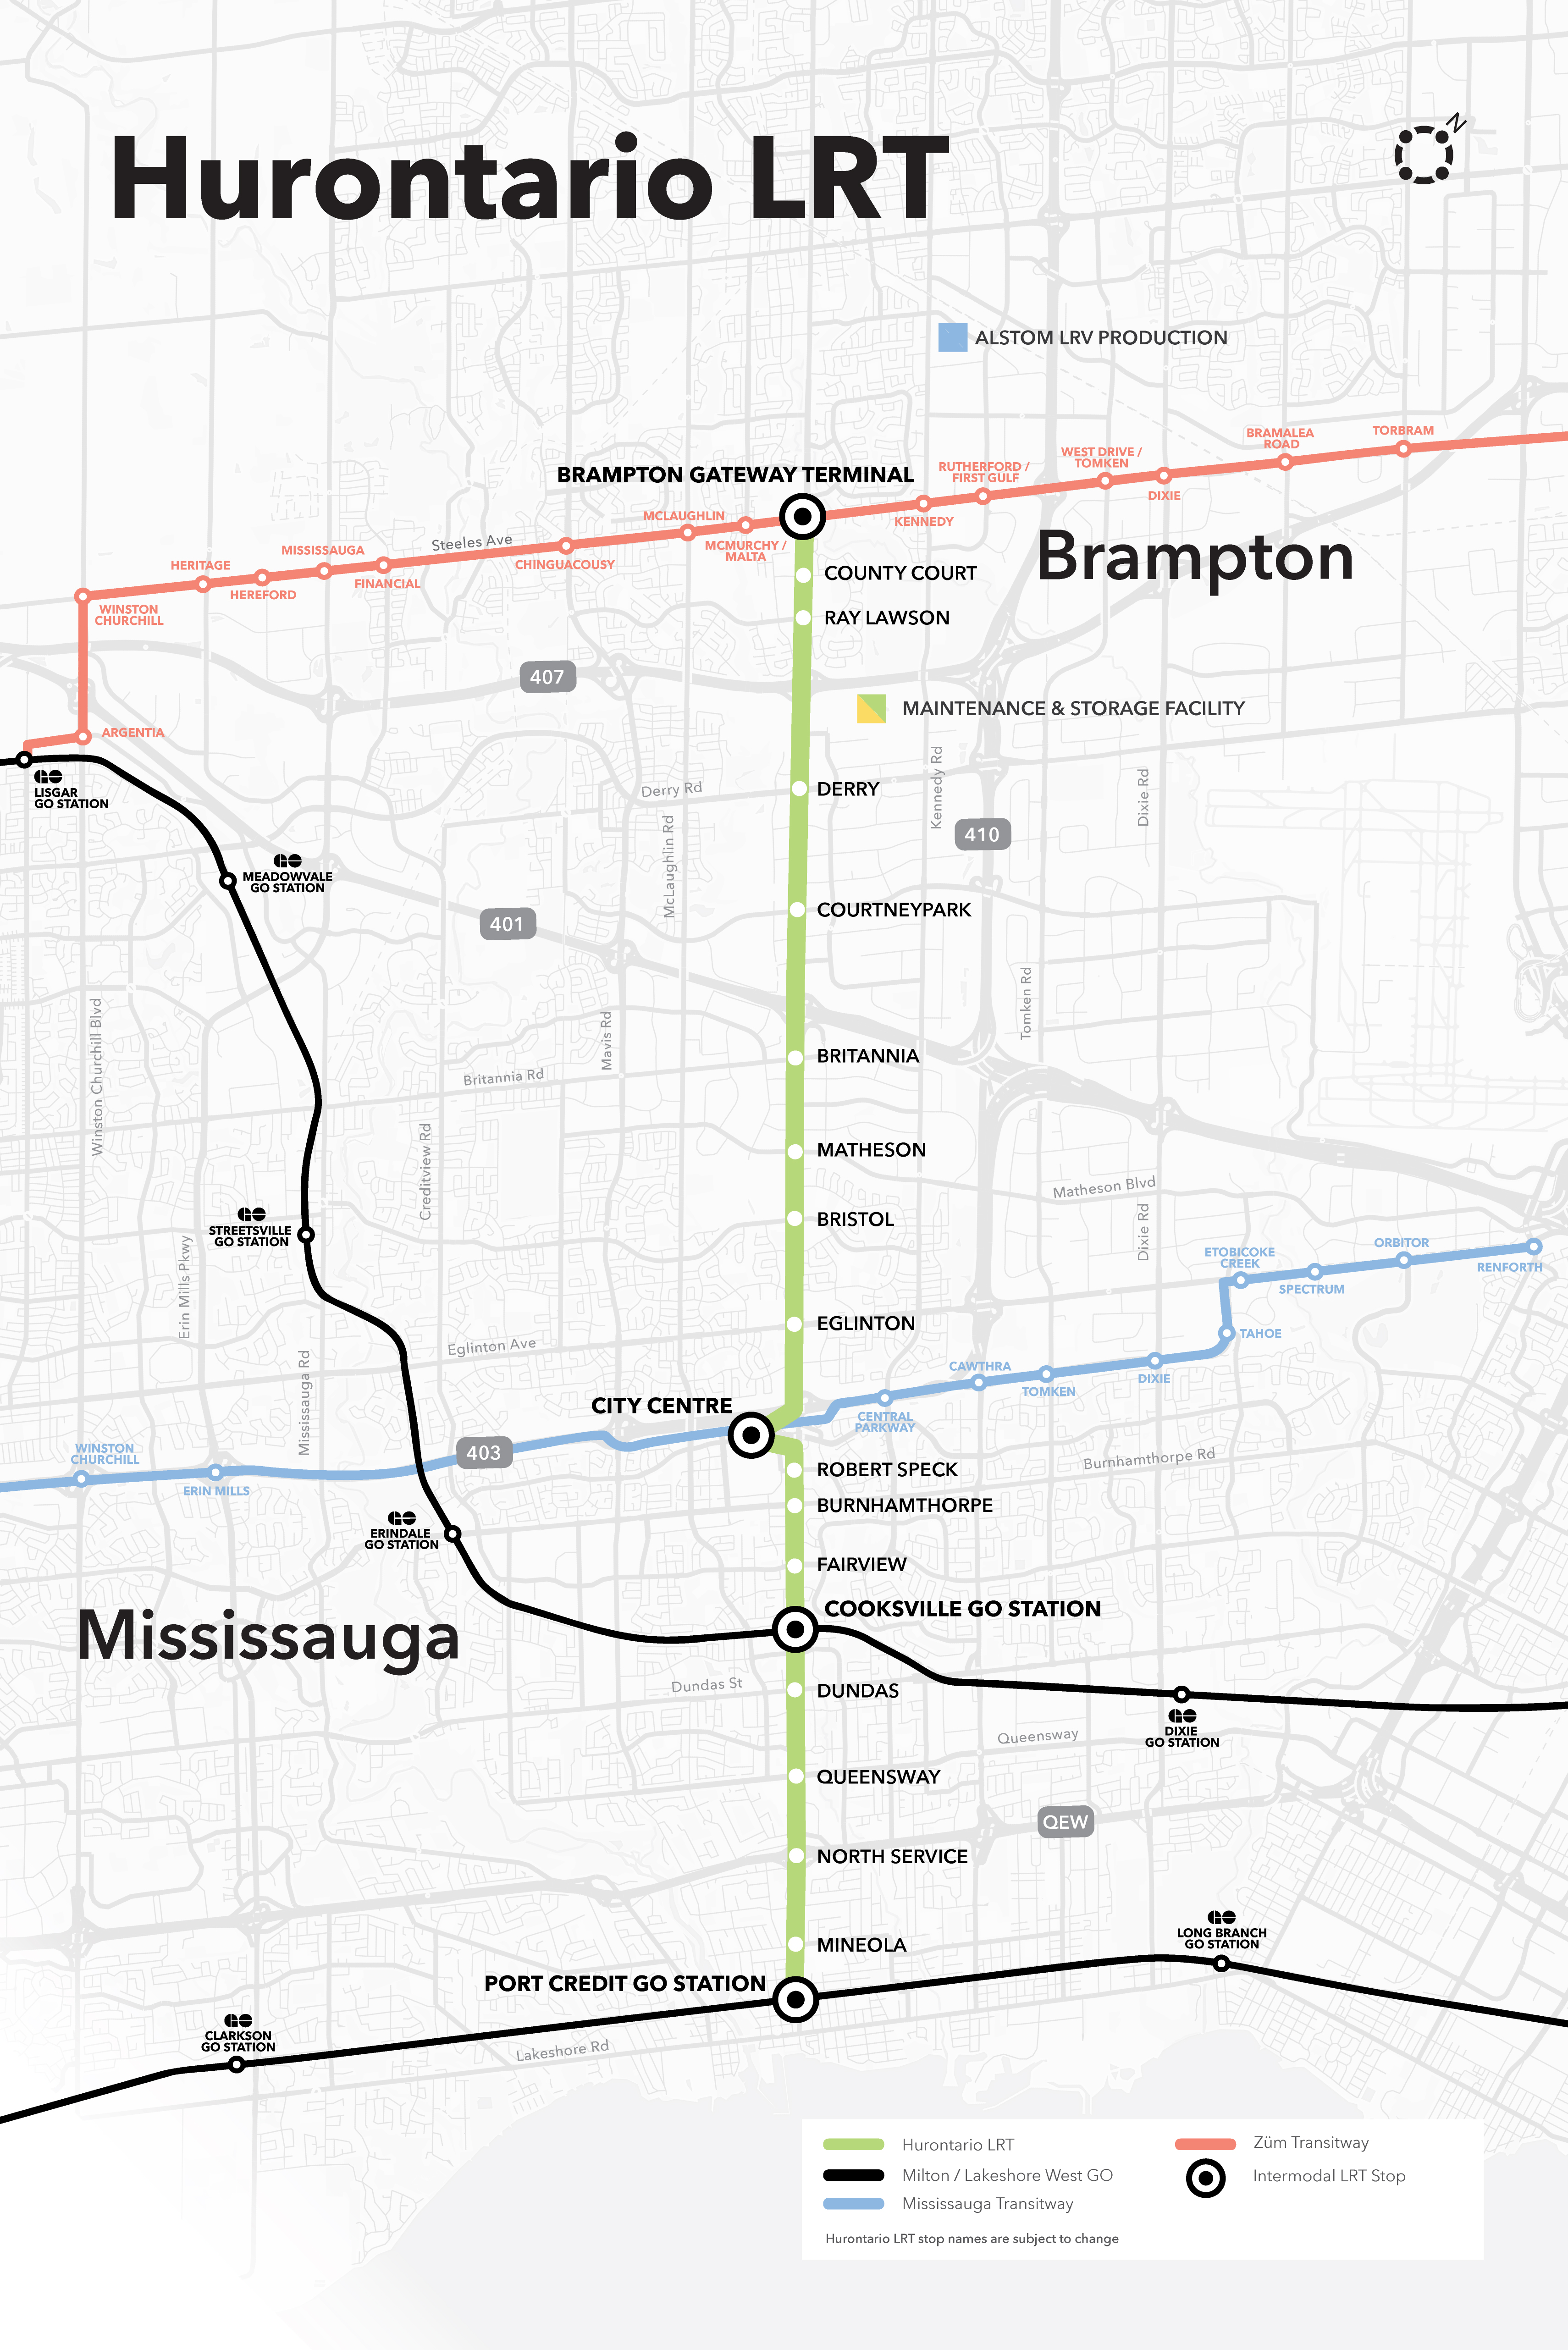 Project Management Subway Map.Metrolinx For A Greater Region Hurontario Lrt